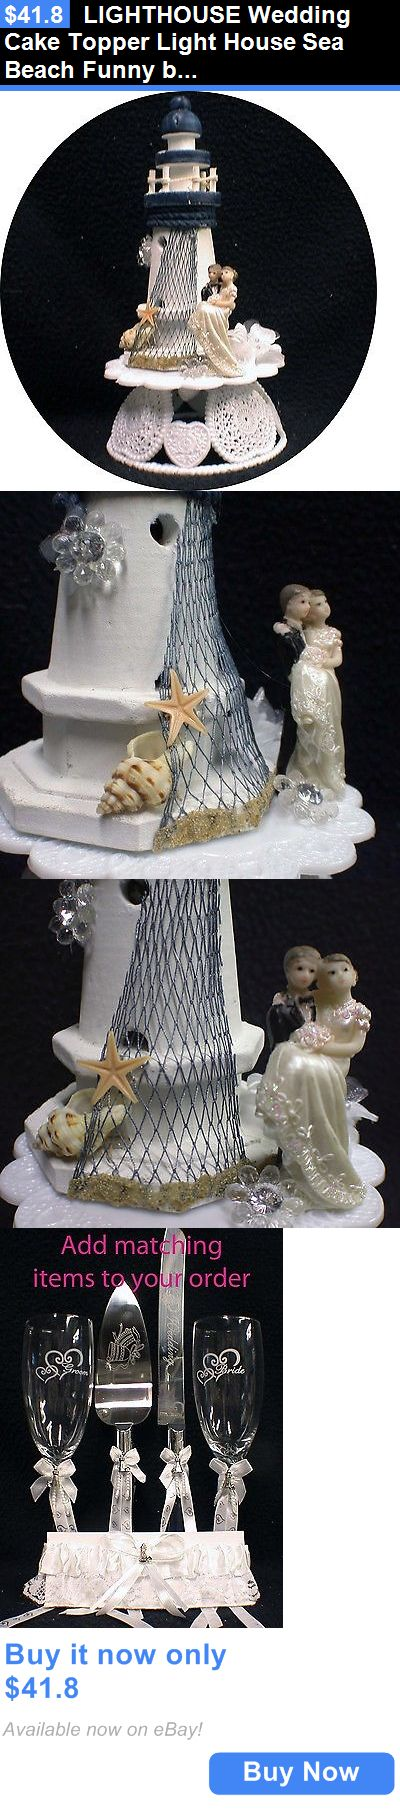 Wedding Cakes Toppers Lighthouse Cake Topper Light House Sea Beach Funny Bride Groom Top